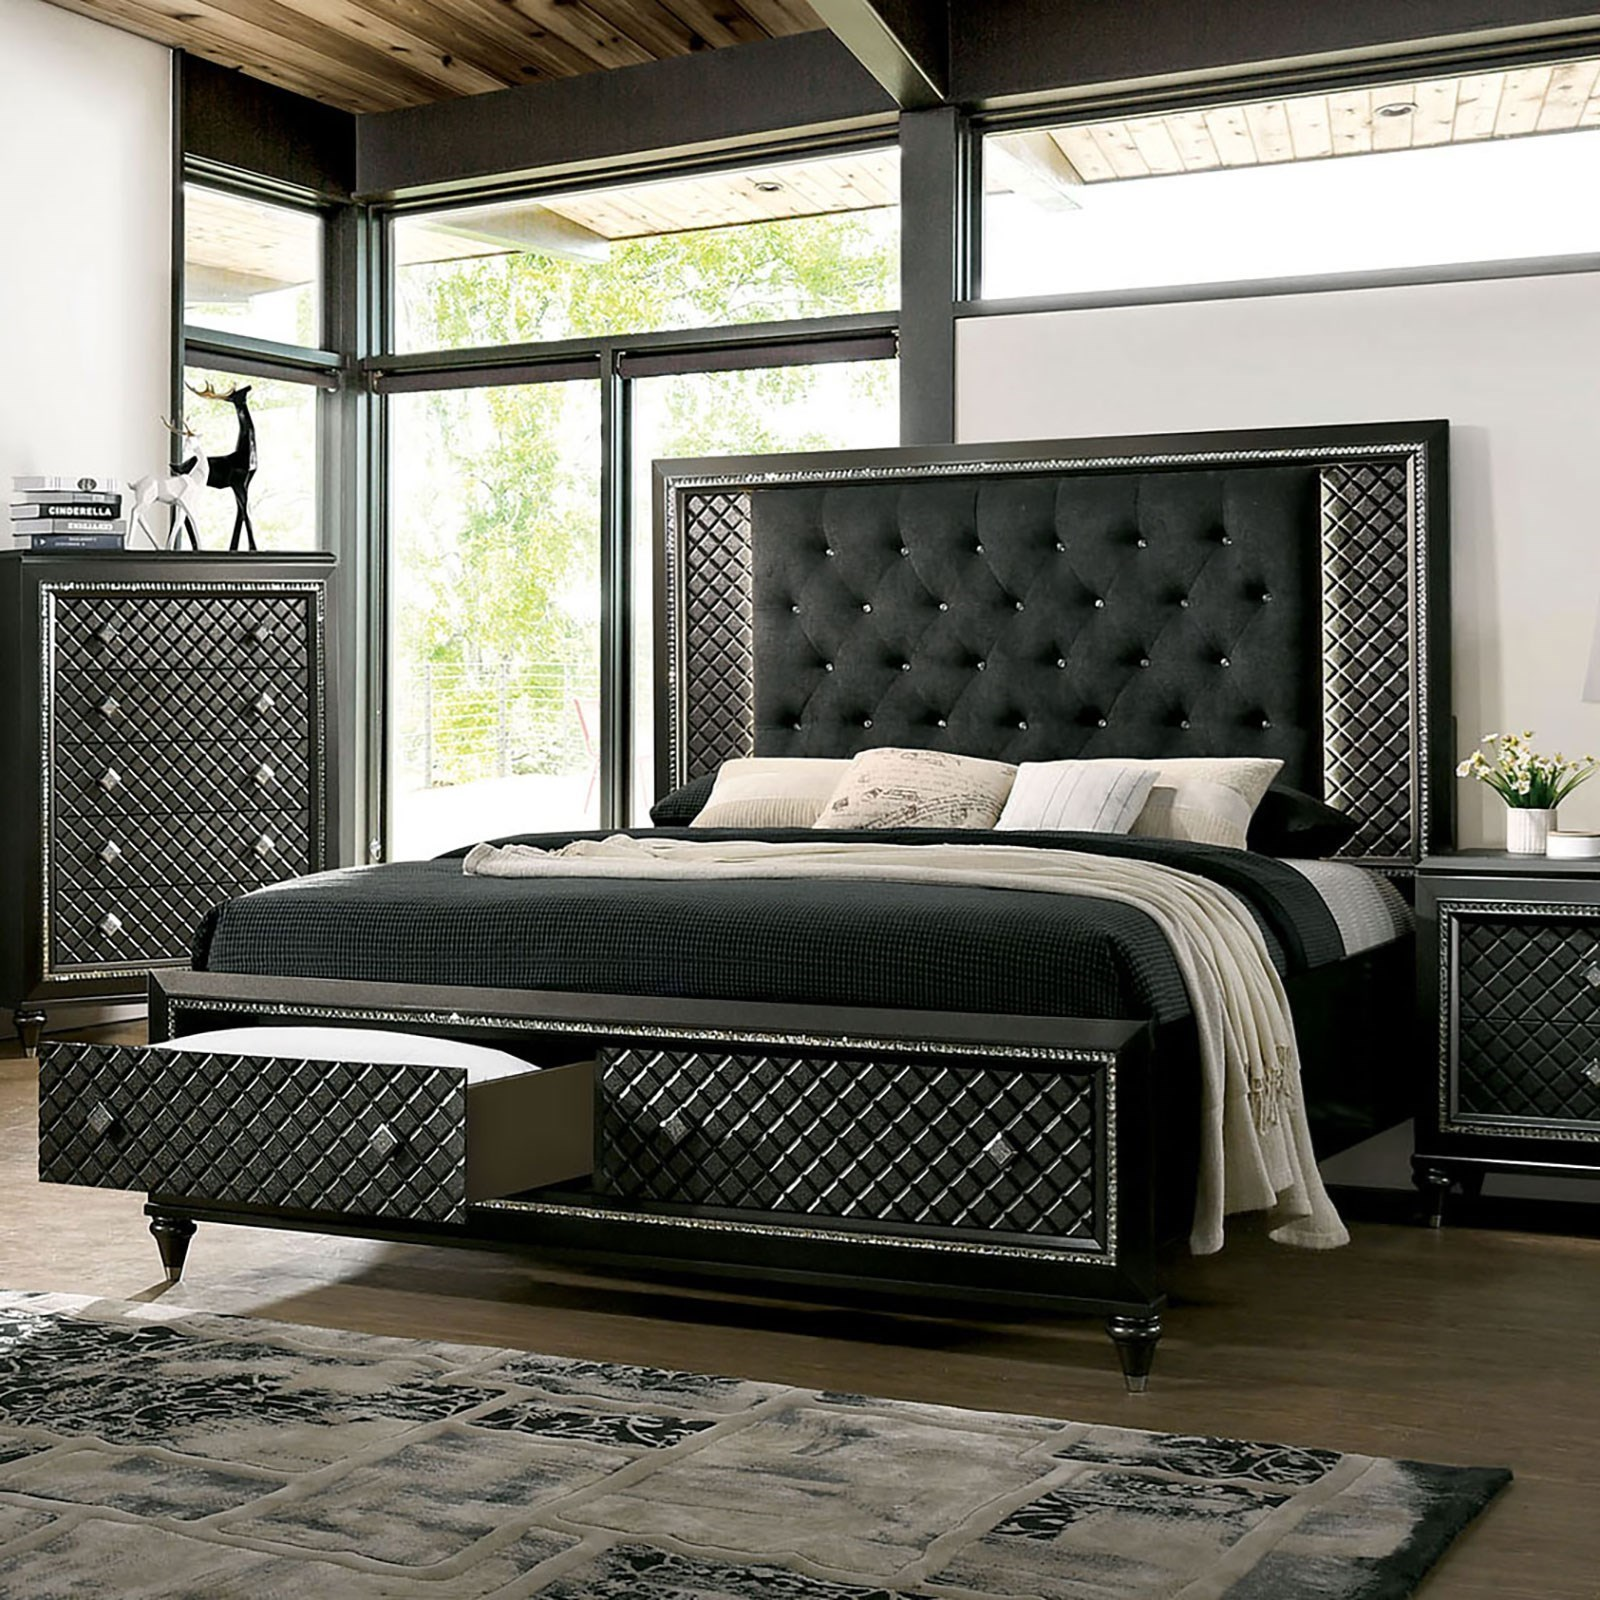 Furniture Of America Demetria Contemporary Queen Upholstered Storage Bed With Led Light Trim Headboard Dream Home Interiors Upholstered Beds